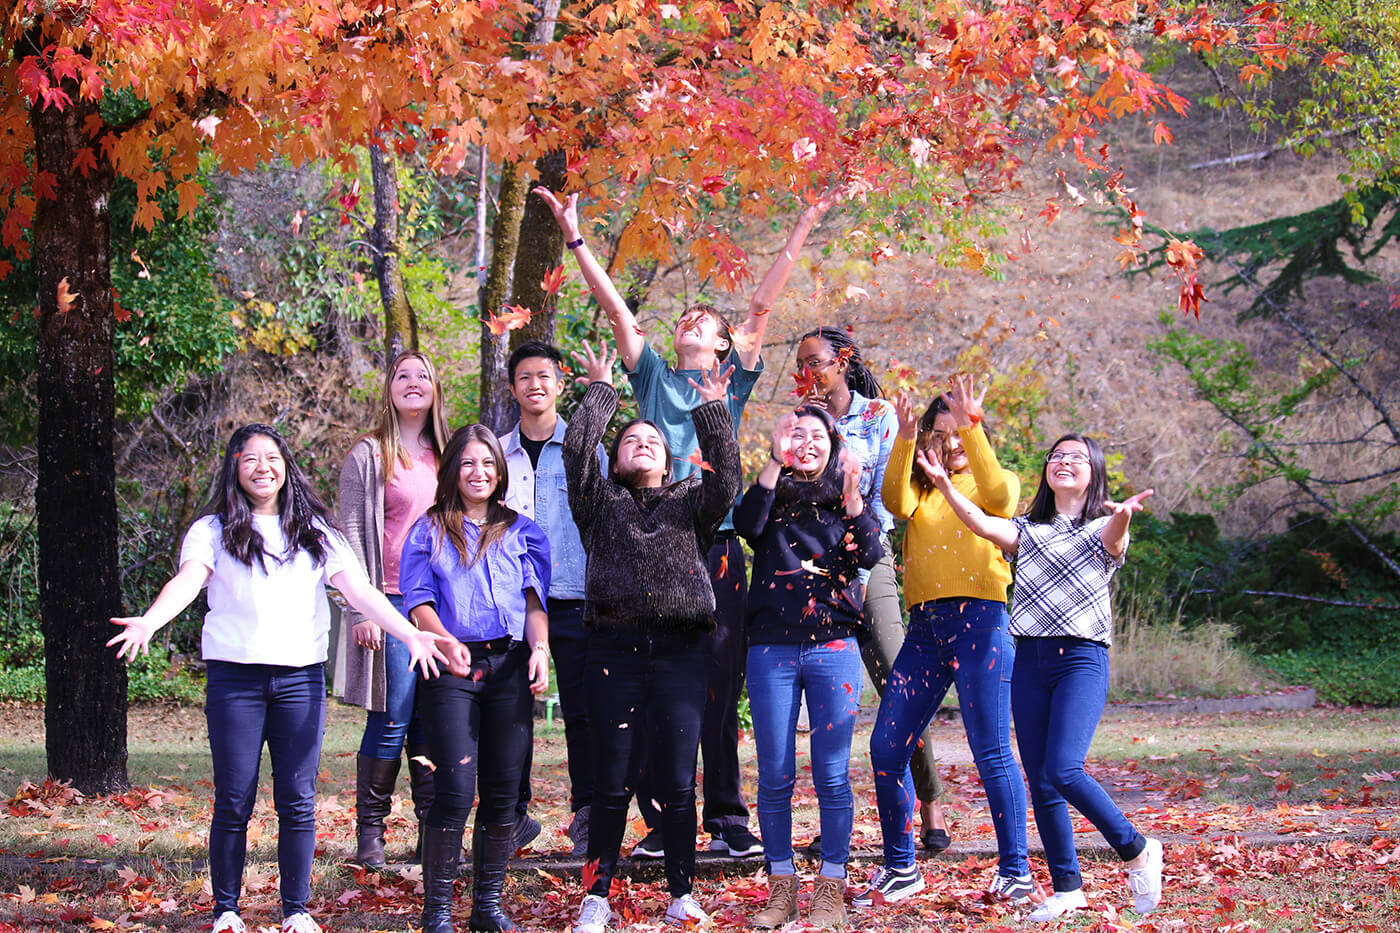 International students, at christian boarding school, enjoy the fall season, by throwing leaves, in the air, that have changed colors